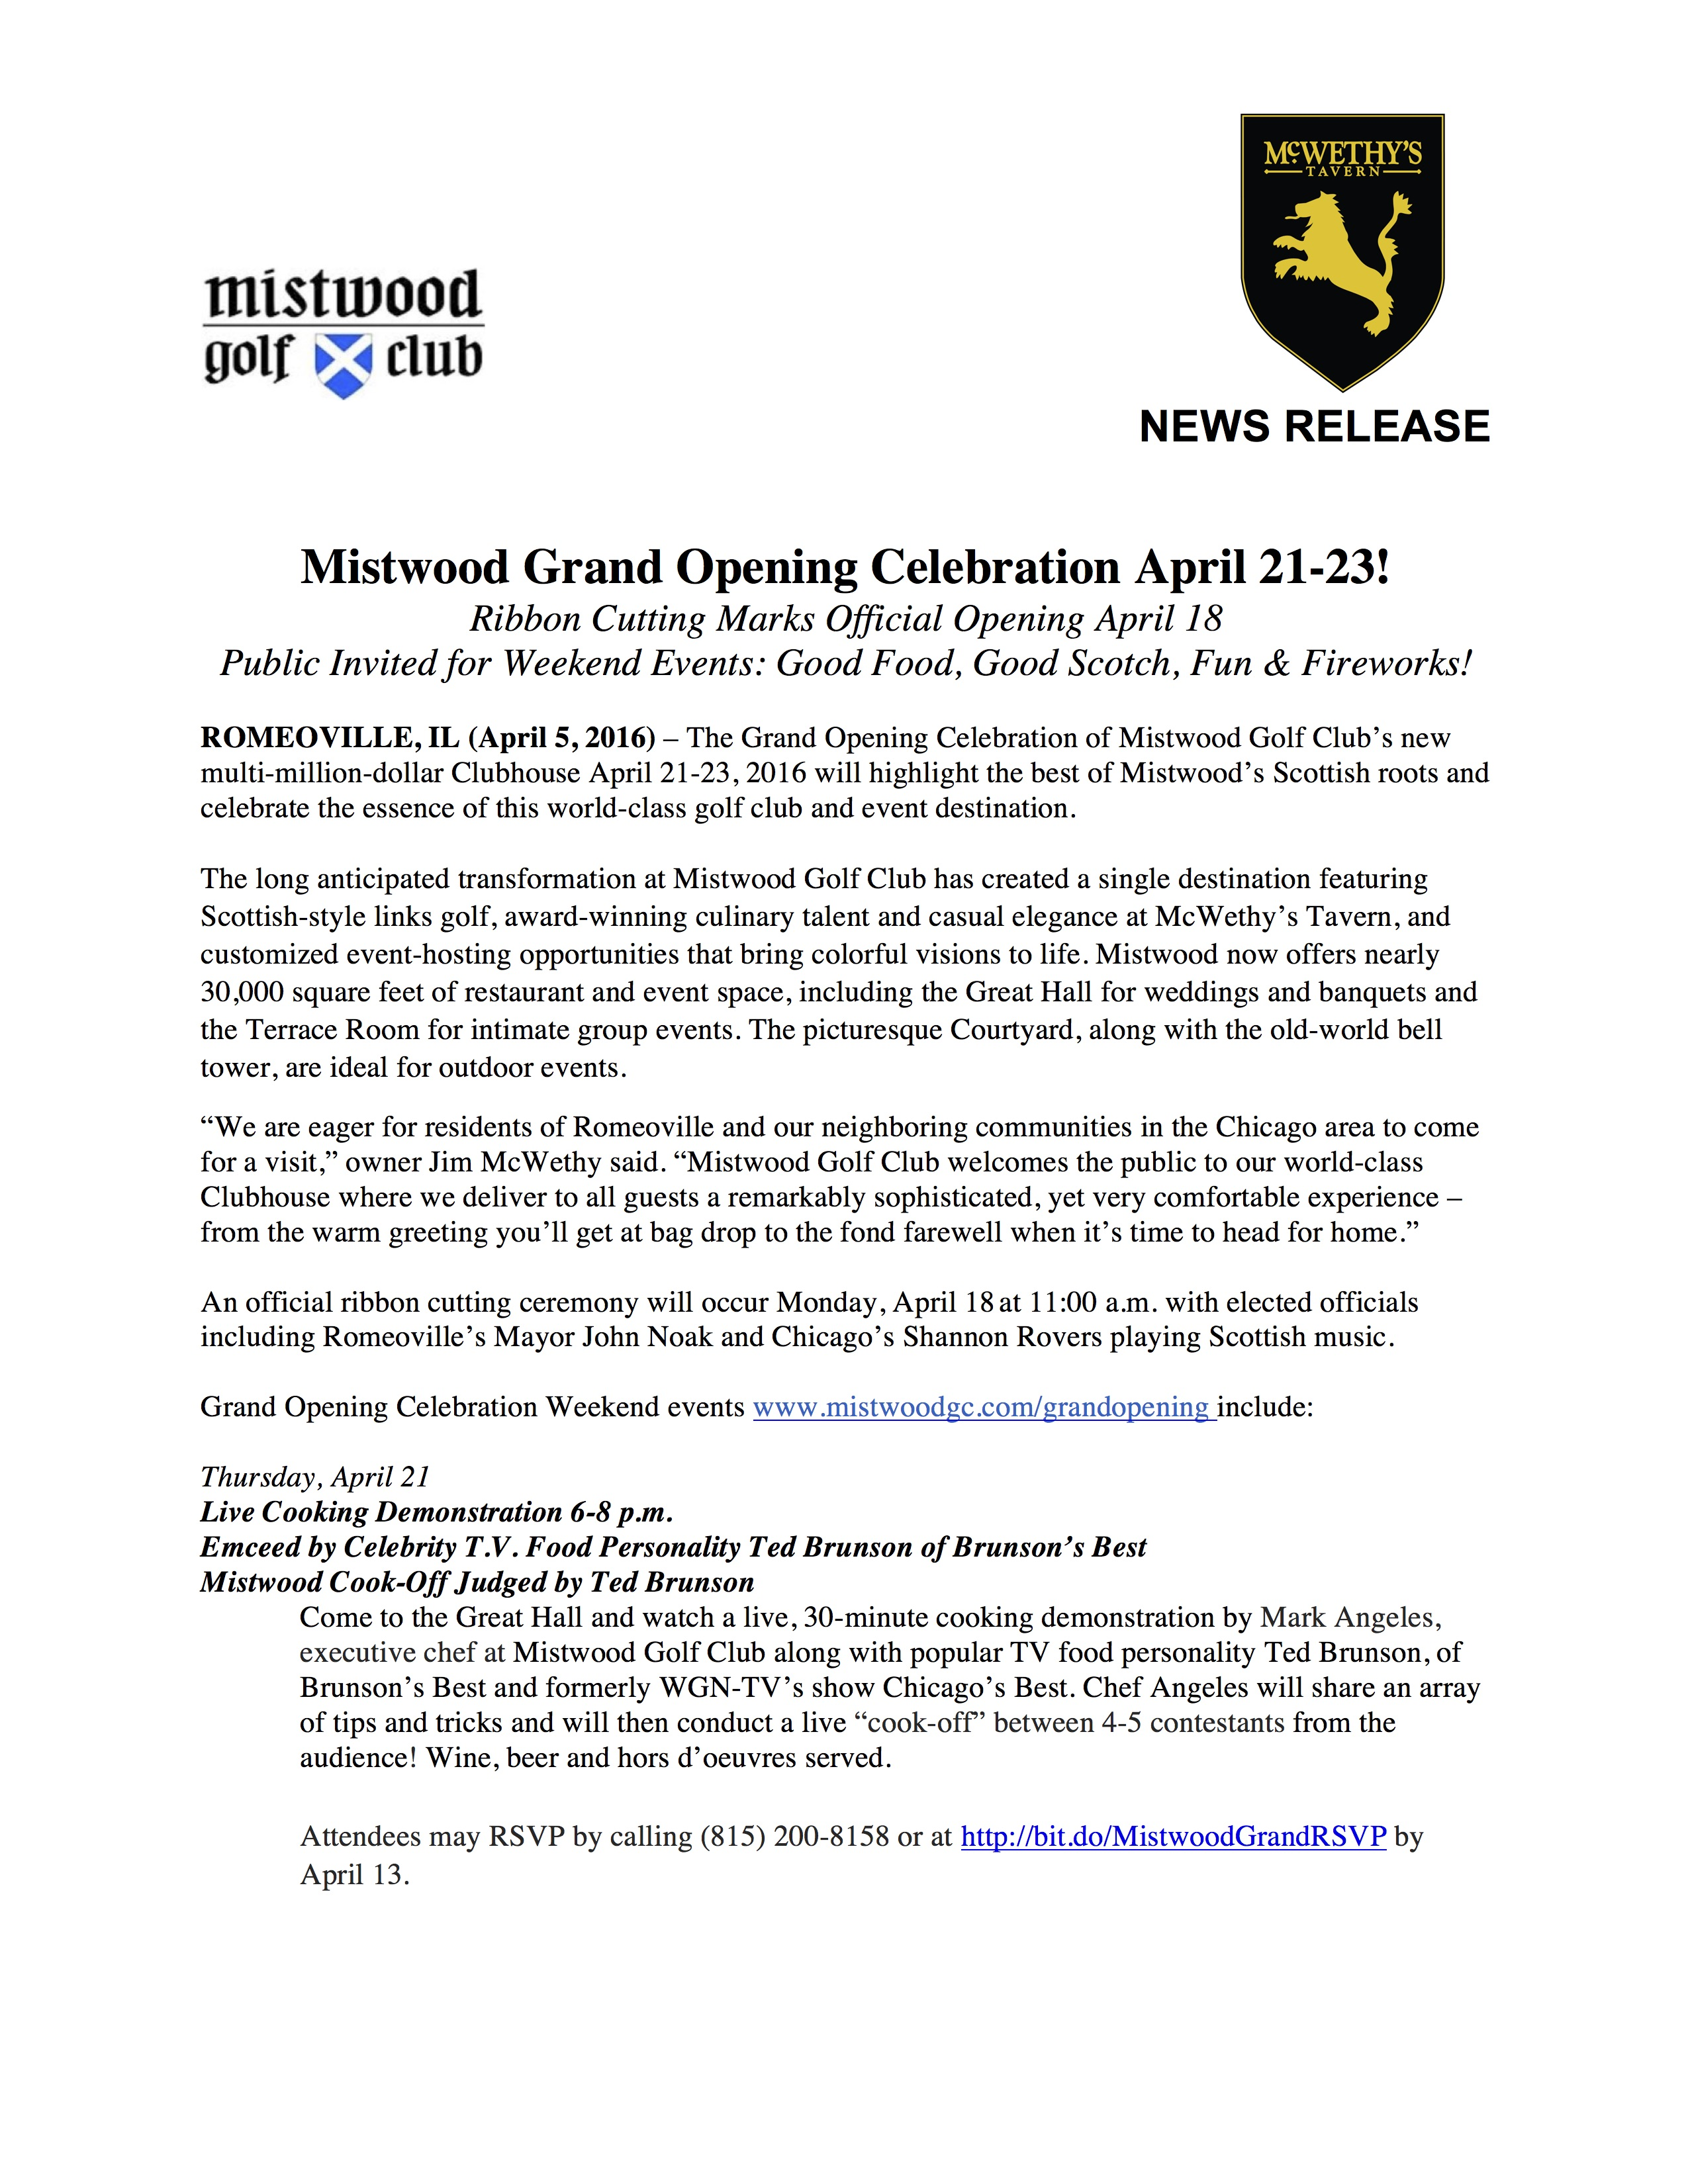 Mistwood and McWethys Grand Opening Celebration Release FINAL Updated 4 5 16